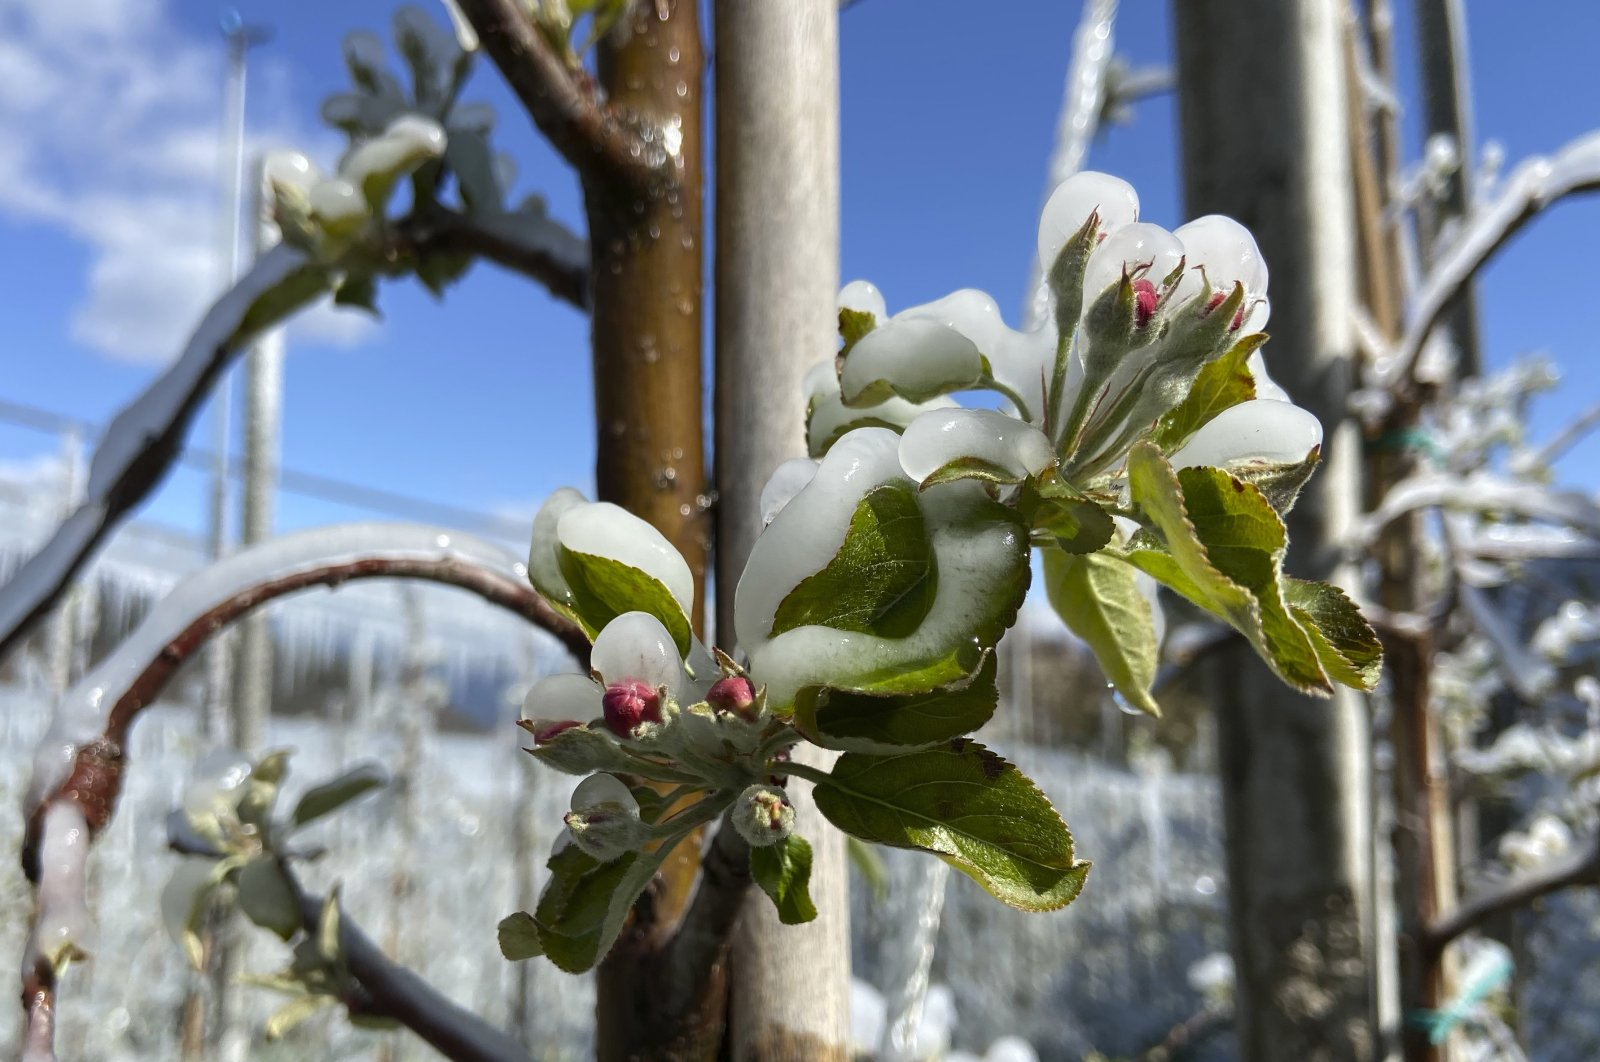 Artificially frozen apple trees covered with melting ice against the blue sky near Bressanone, in northern Italian province of South Tyrol, Italy, on April 8, 2021. (AP Photo)